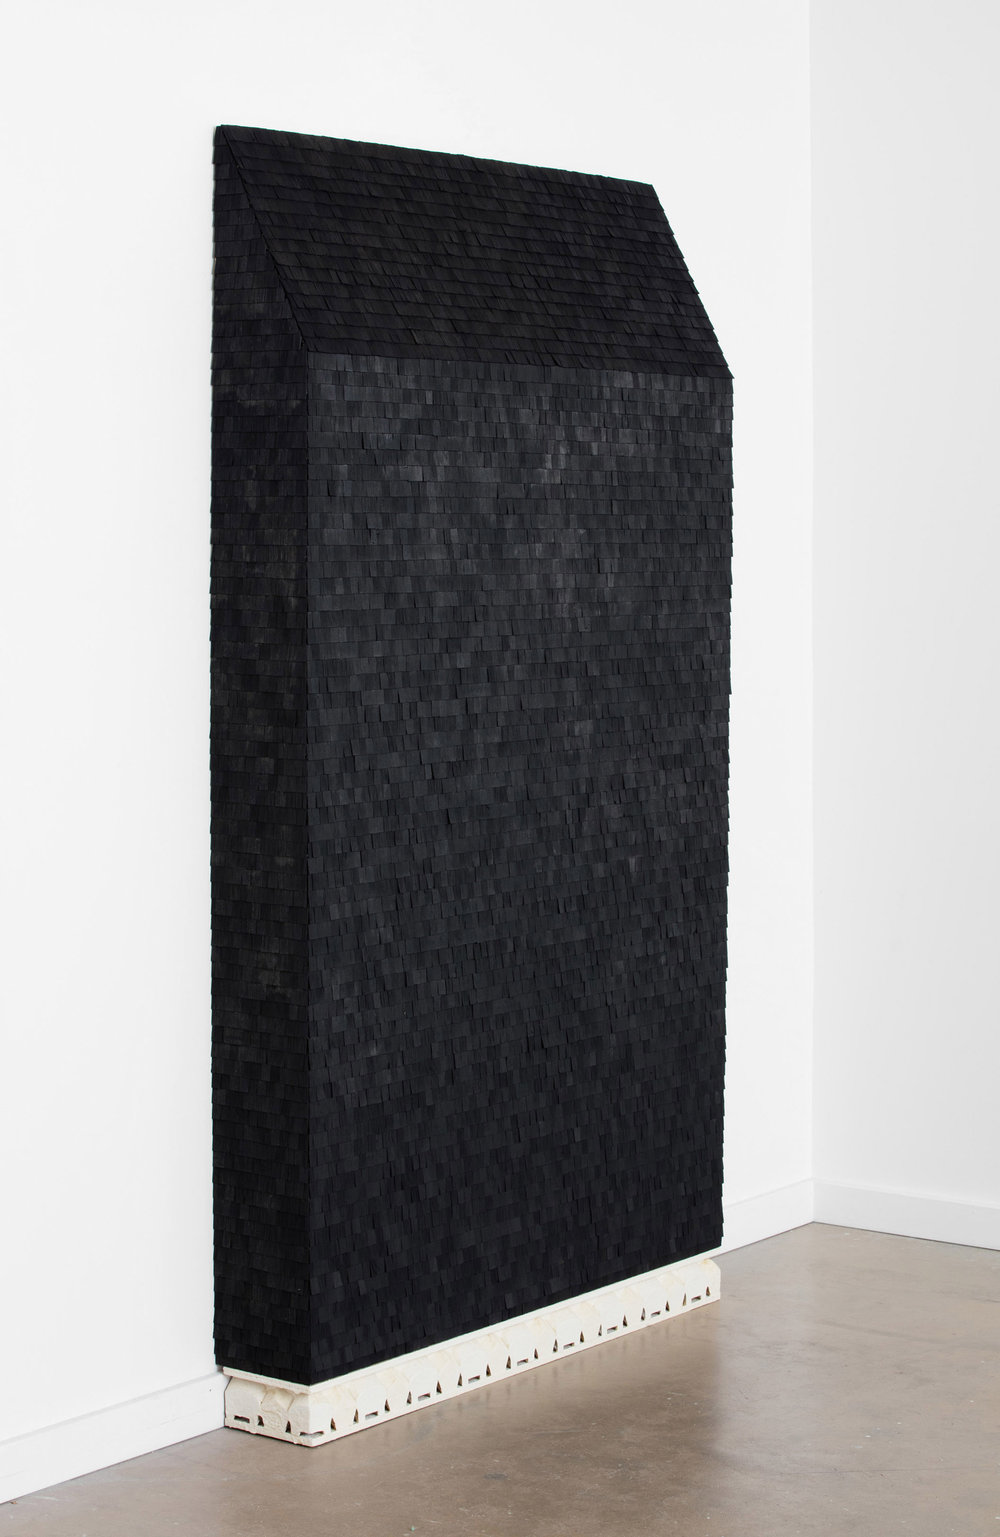 Cal Siegel , coughin , 2016. Wood, dollhouse shingles, acrylic, plaster, 82 x 48.5 x 8 inches.